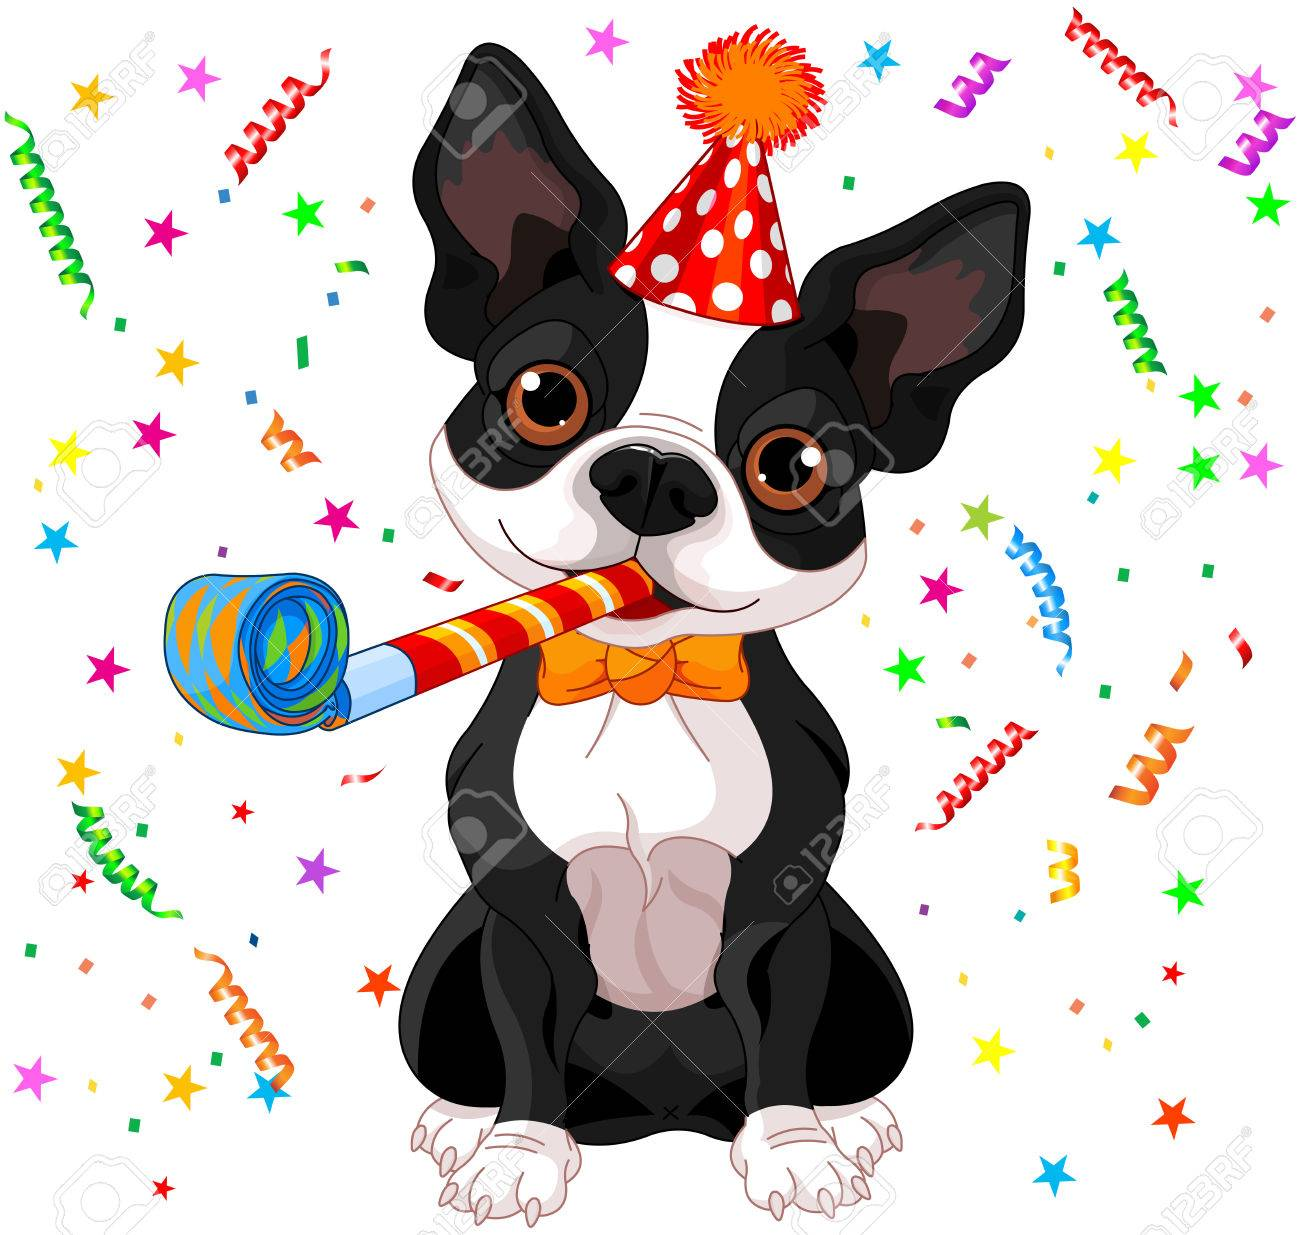 Livre: La Méthode Tellington-TTouch de Linda Tellington-Jones - Page 2 35588778-illustration-of-cute-boston-terrier-celebrating